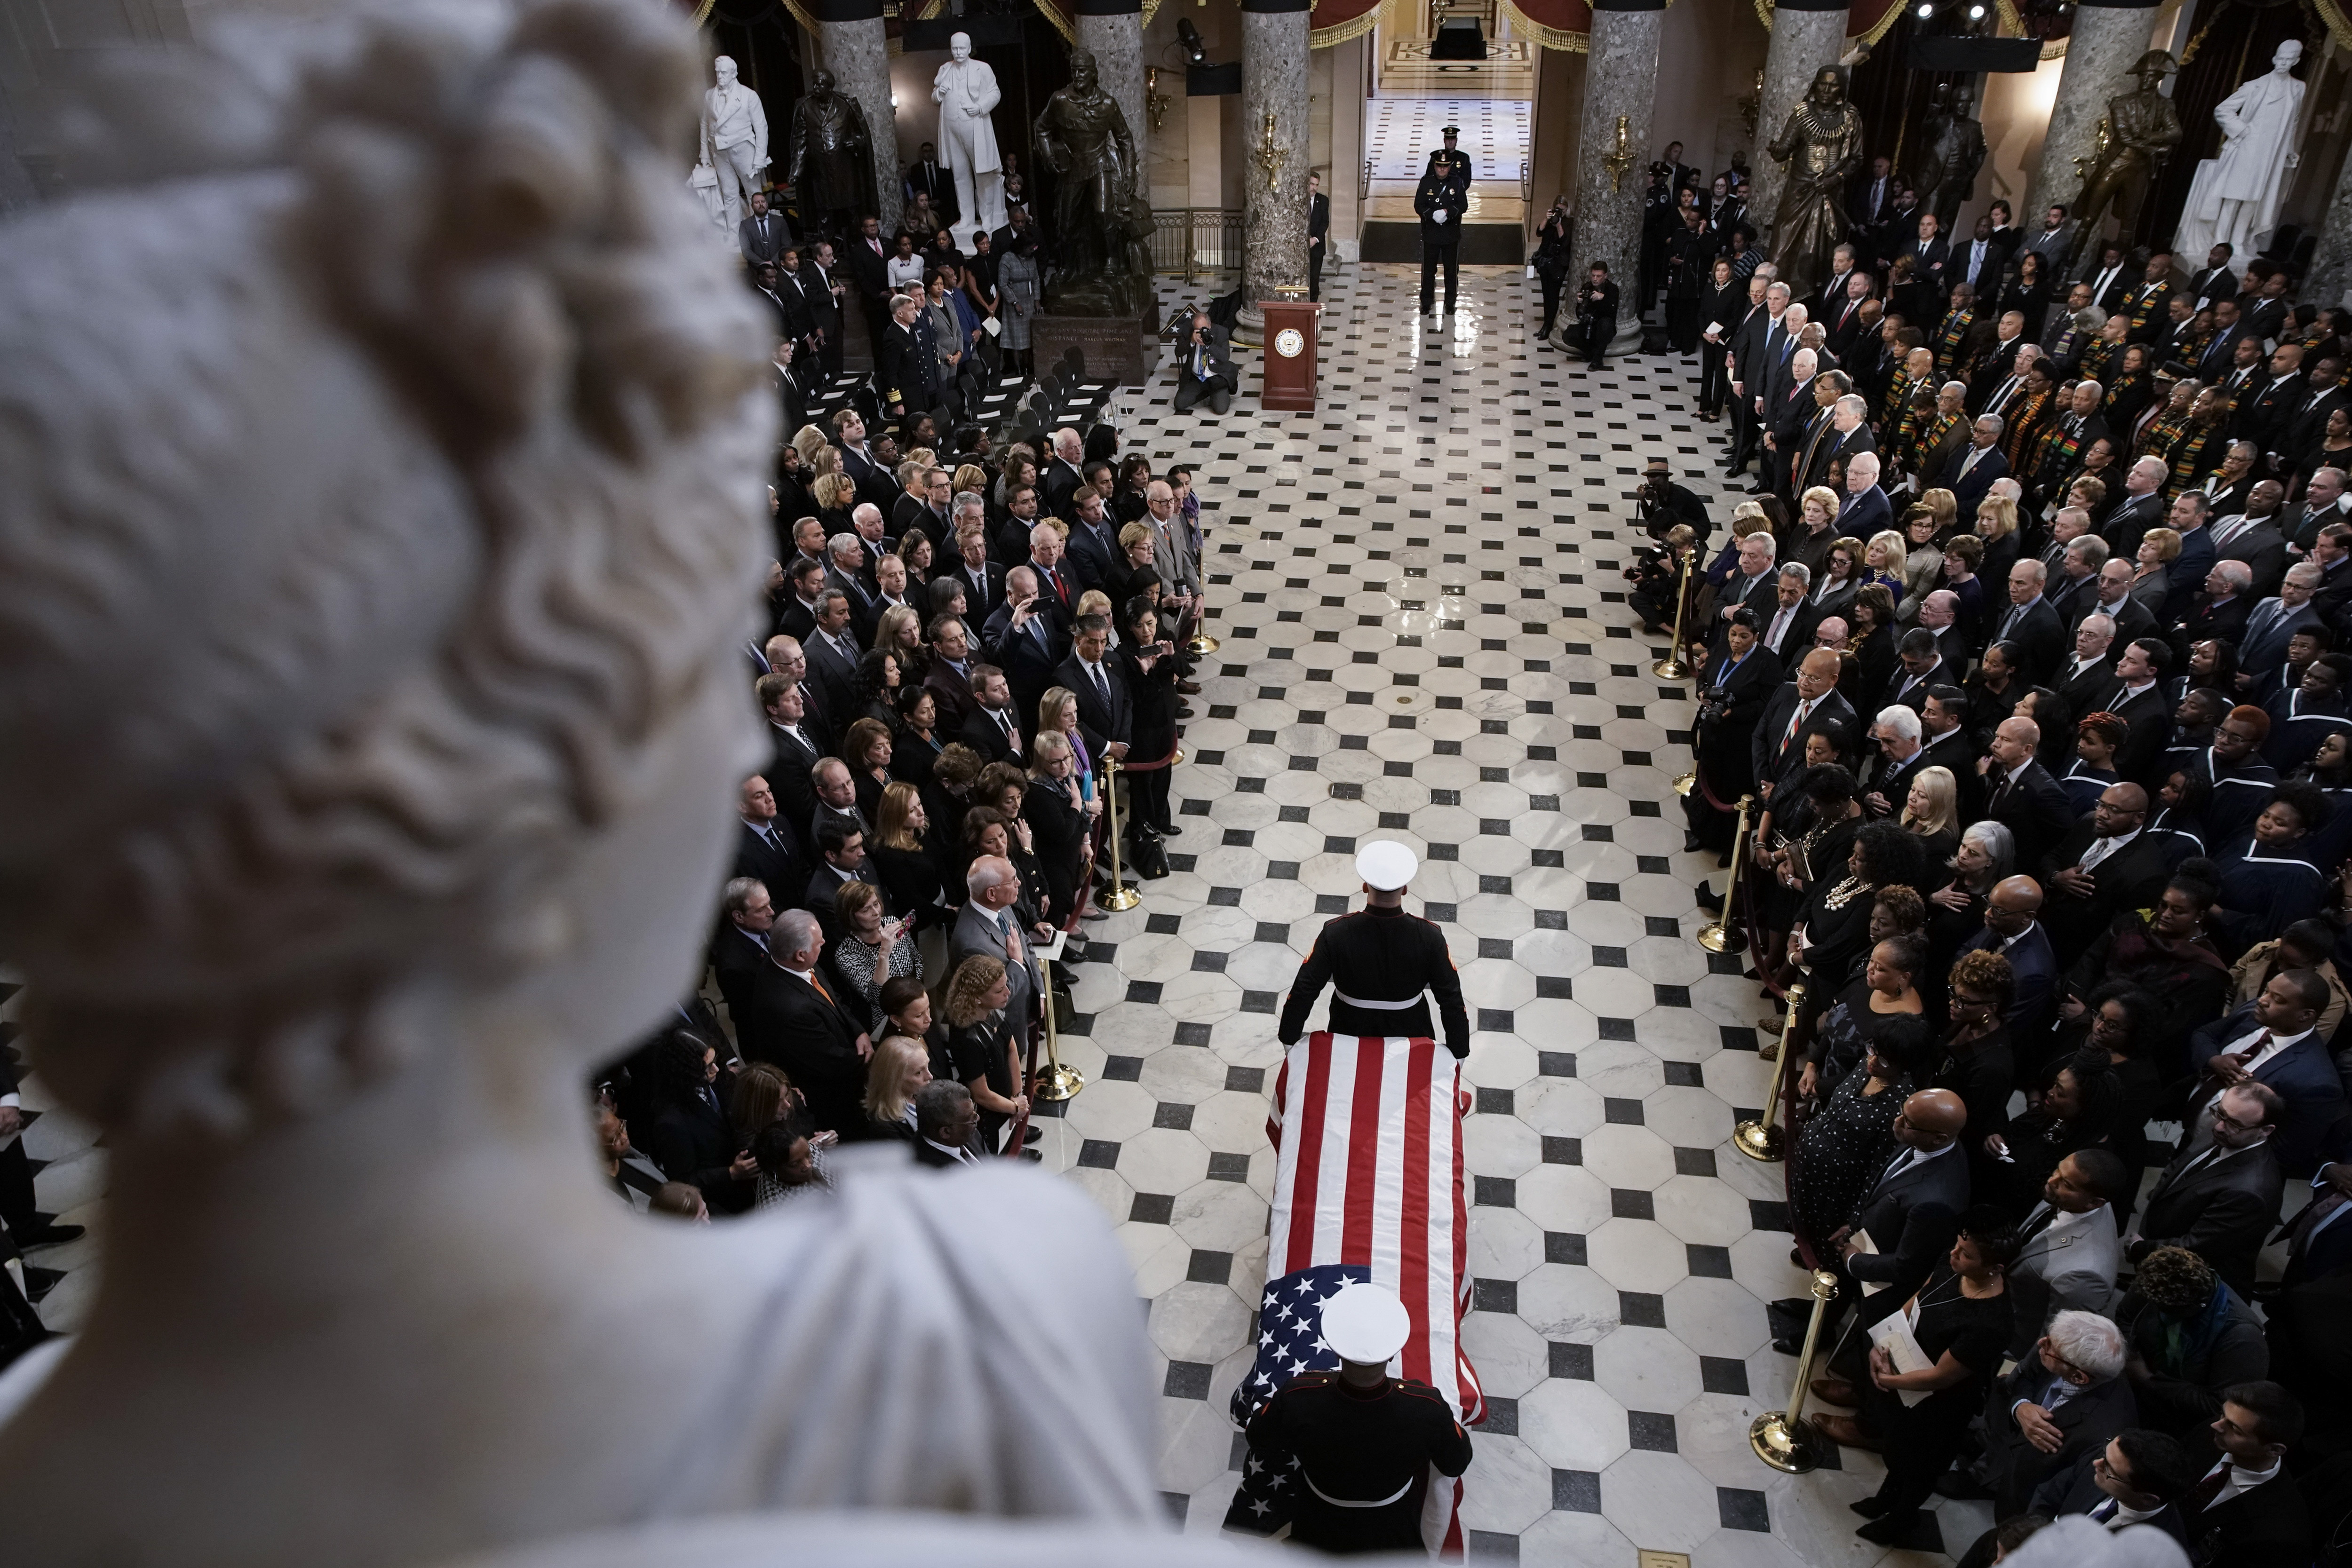 "WASHINGTON, DC - OCTOBER 24: The flag-draped casket of U.S. Rep. Elijah Cummings (D-MD) is escorted by a military honor guard to National Statuary Hall in the U.S. Capitol for a memorial service October 24, 2019 in Washington, DC. Rep. Cummings passed away on October 17, 2019 at the age of 68 from ""complications concerning longstanding health challenges."" (Photo by Al Drago-Pool/Getty Images)"